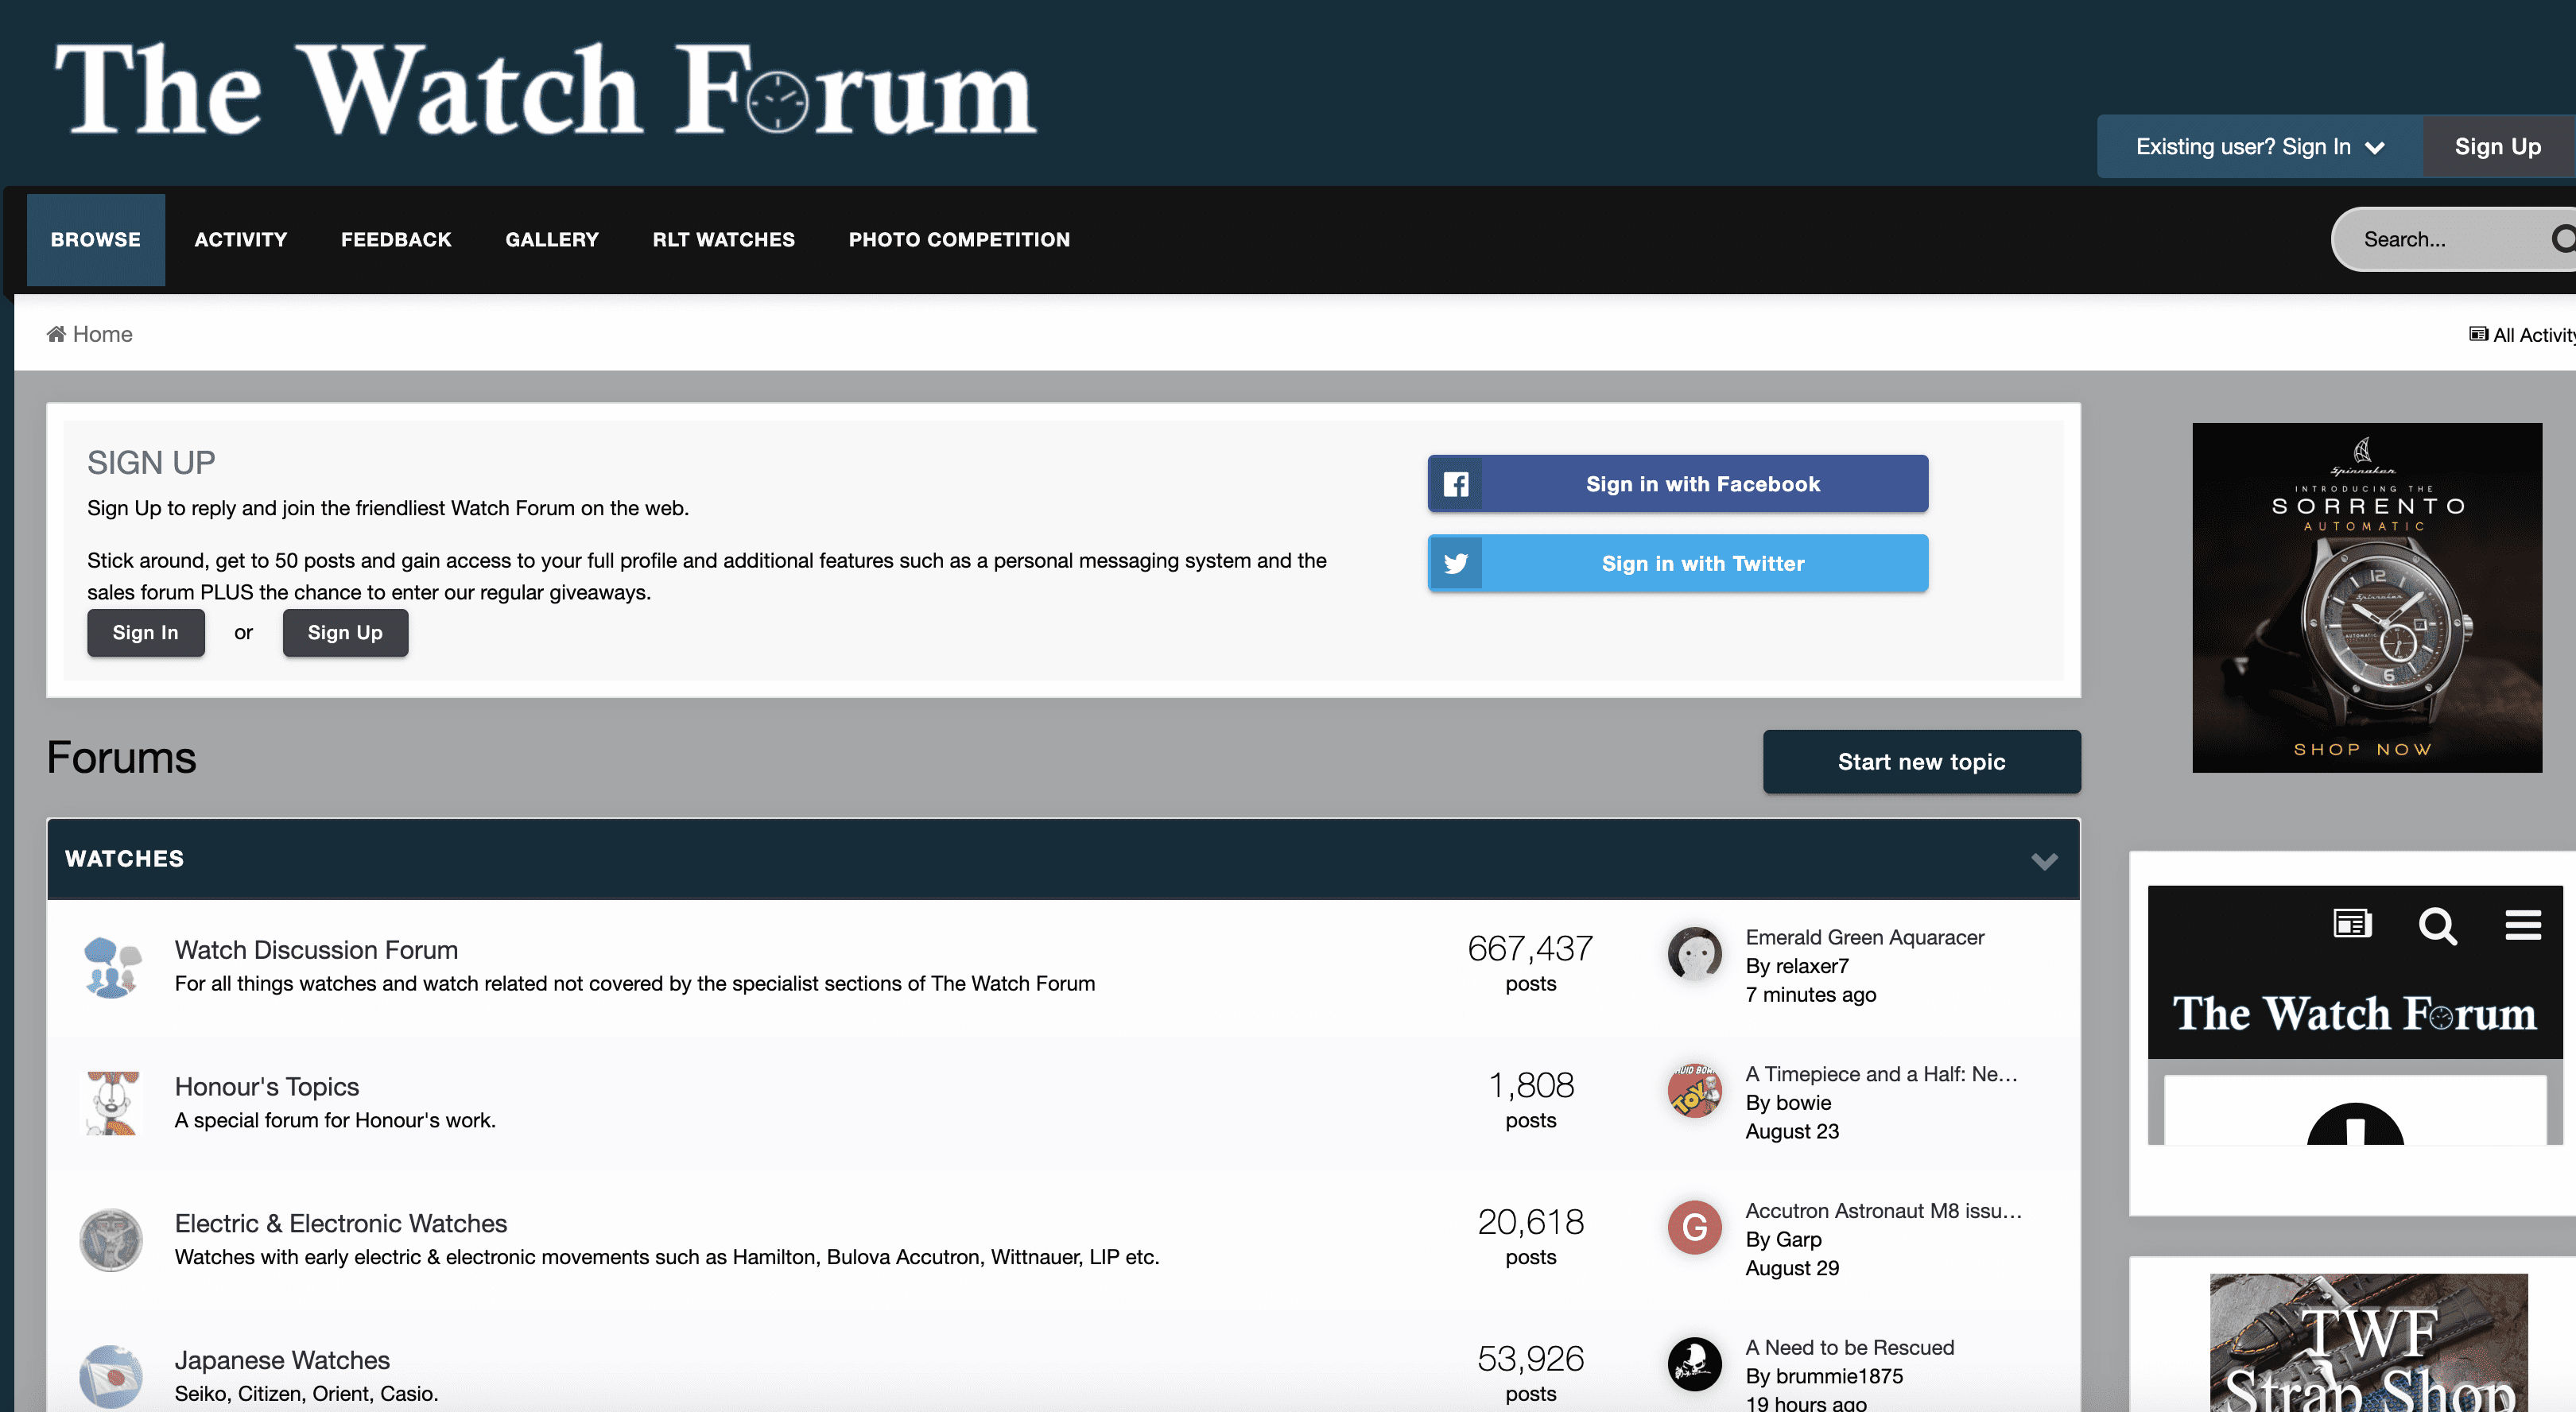 The watch forum